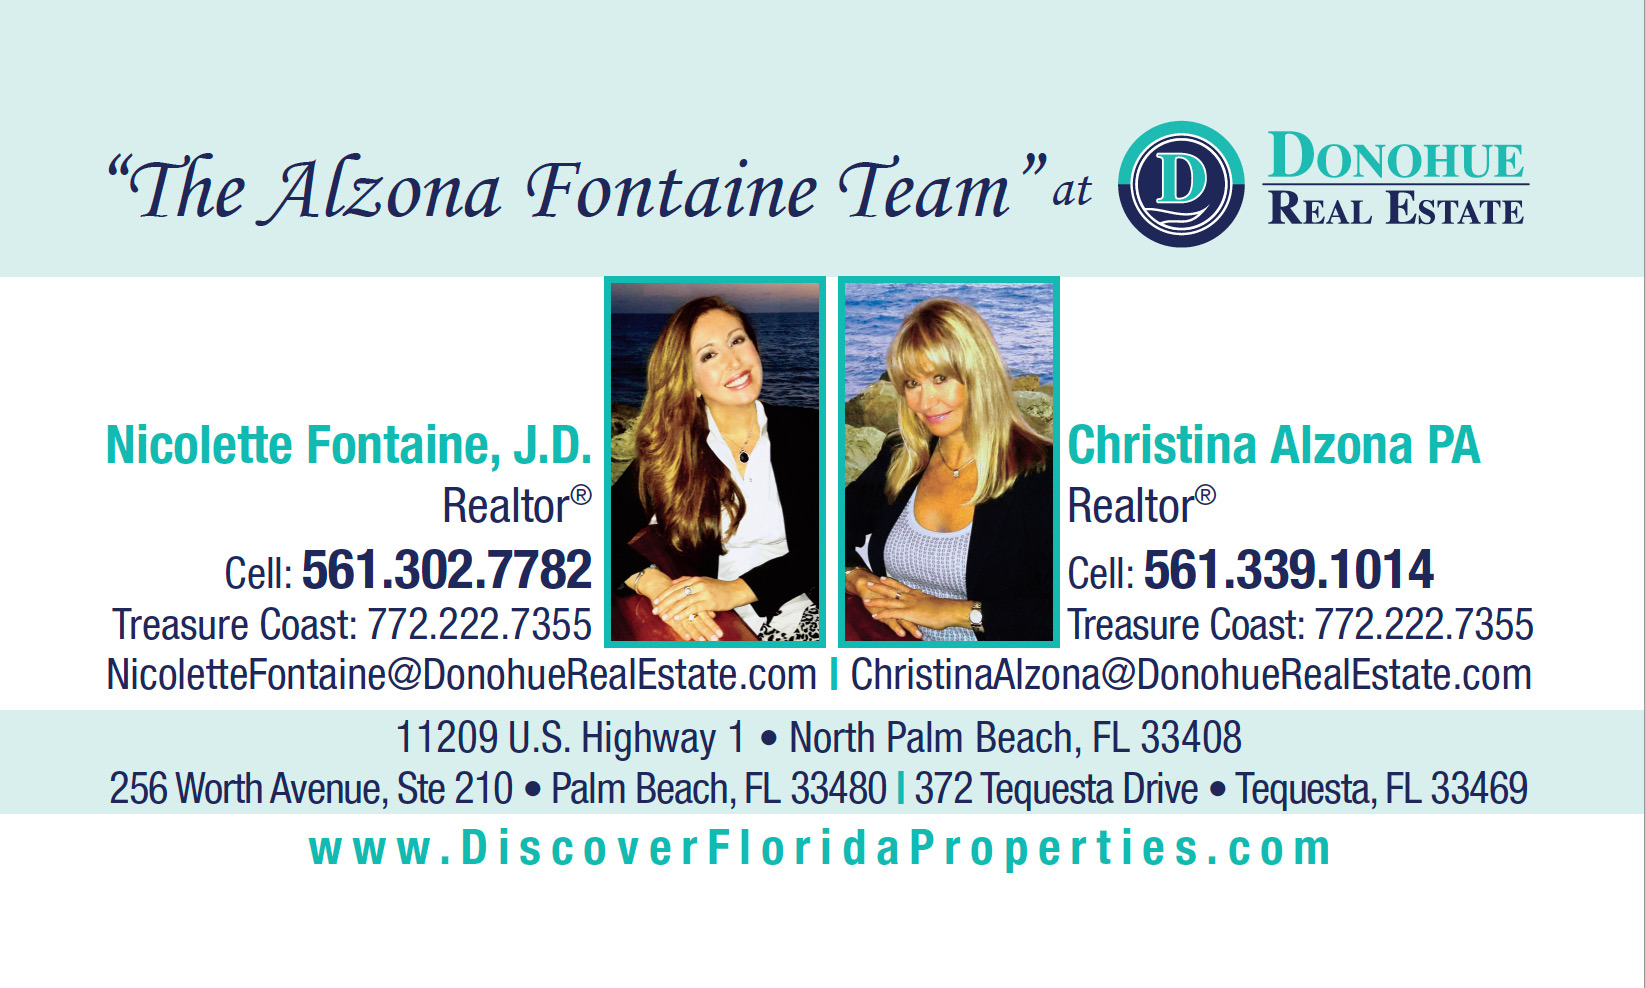 "Nicolette Fontaine & Christina Alzona – Realtors at Donohue Real Estate – Realtor at Future Home Realty 11209 U.S. Highway 1, North Palm Beach, FL 33408 256 Worth Avenue, Ste. 210, Palm Beach, FL 33480 372 Tequesta Dr., Tequesta, FL 33469 Now may be the best time to make your Next Move! Get two positive, helpful real estate professionals, Christina Alzona PA with 20 years experience and Nicolette Fontaine J.D. with 12 years experience, that will guide your every step in Buying or Selling a Home: Trusted resource for answers about the process Innovative marketing strategies Expertise about neighborhood features Ability to target home searches Strong negotiation skills Support through the closing and beyond. ""The Alzona Fontaine Team"" at Donohue Real Estate LLC are Polish and Italian speaking Licensed Florida Real Estate Agents, who sell properties throughout the Palm Beaches and The Treasure Coast, Florida. Christina is a native of Warsaw, Poland and has worked with Polish and European Real Estate Clients; Nicolette has worked with International Buyers and Investors. Specializing in Waterfront Real Estate, Luxury Homes, Oceanfront and Intracoastal Condos, Golfcourse Properties, Equestrian/Farm Properties, Residential Resale, New Home Construction & Commercial Real Estate throughout Palm Beach County, Martin County and St Lucie County, Southeast Florida. – ""The Alzona Fontaine Team"" oferuje kompleksową obsługę klienta w obrocie nieruchomościami (kupno i sprzedaż) w Palm Beach County, Martin County and St Lucie County na południowo-wschodnim wybrzeżu Florydy. Oprócz angielskiego, Christina i Nicolette mówią biegle po polsku i włosku. Christina pochodzi z Warszawy i ma ponad 20-letnie doświadczenie w pośrednictwie obrotu nieruchomościami. Nicolette ma ponad 12-letnie doświadczenie na rynku nieruchomości. Christina i Nicolette specjalizują się między innymi w nieruchomościach luksusowych nad wodą, przy plaży i na polach golfowych. – Nicolette: (561) 302-7782 Christina: (561) 339-1014 Treasure Coast: (772) 222-7355 – www.DiscoverFloridaProperties.com – Facebook.com/DiscoverFloridaProperties –"